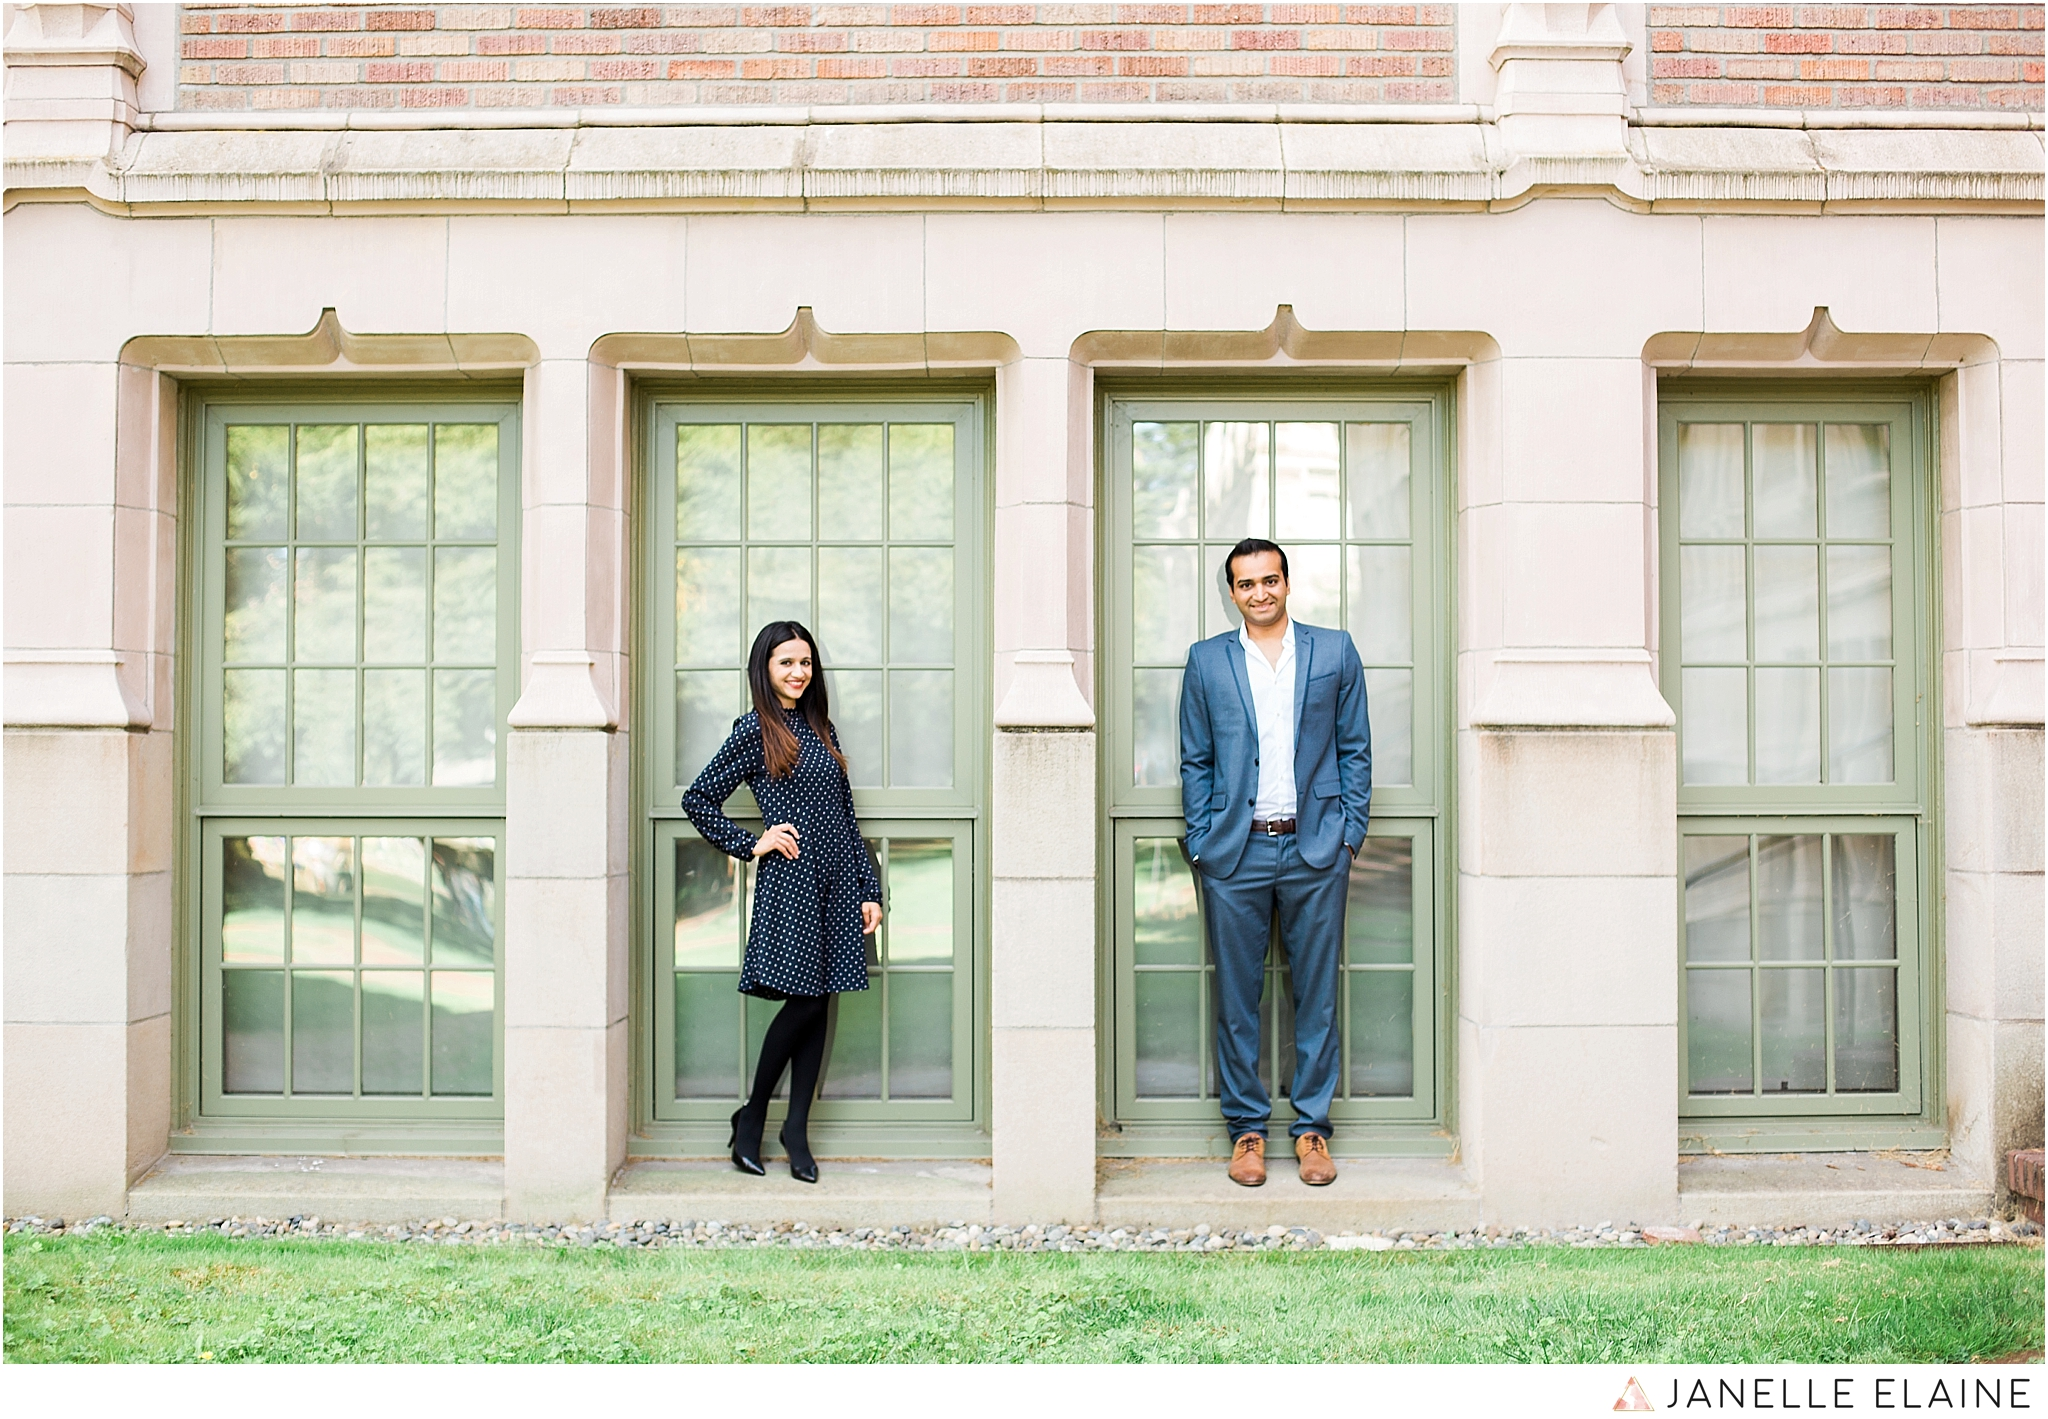 janelle elaine photography-zain and umema-seattle-uw-red square-engagement-photographer-181.jpg